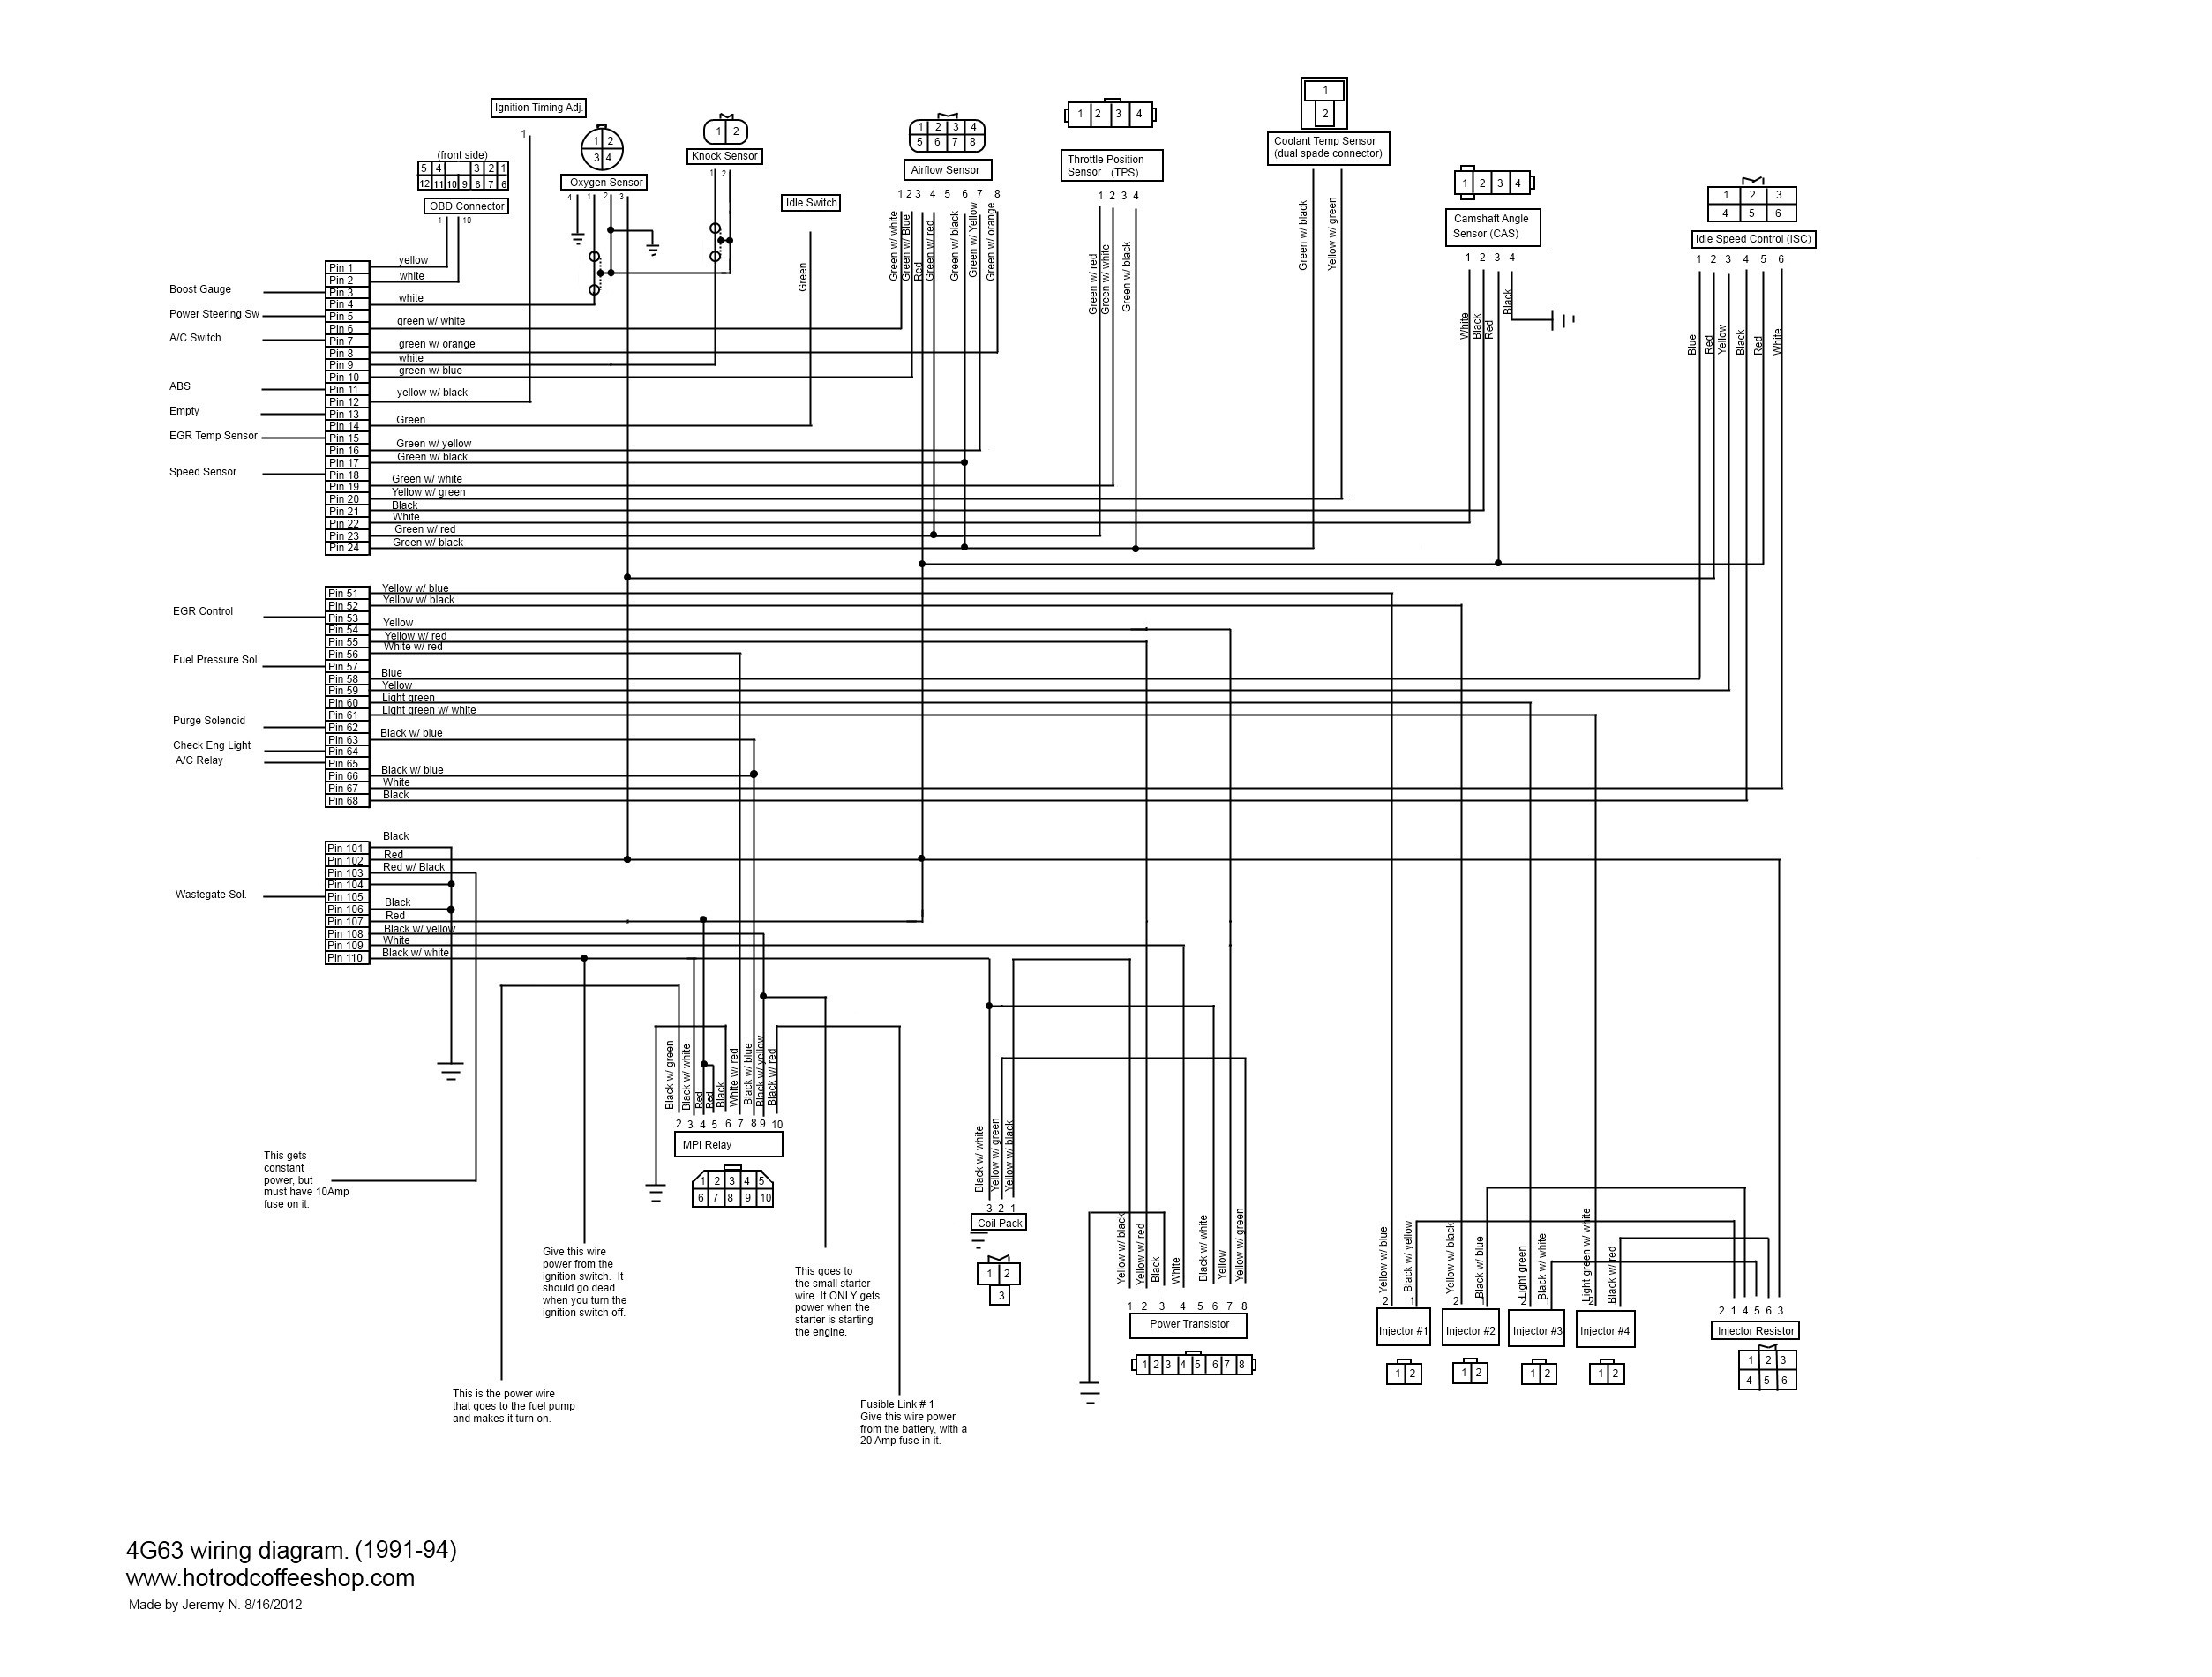 Mitsubishi Lancer Stereo Wiring Diagram For Your Needs